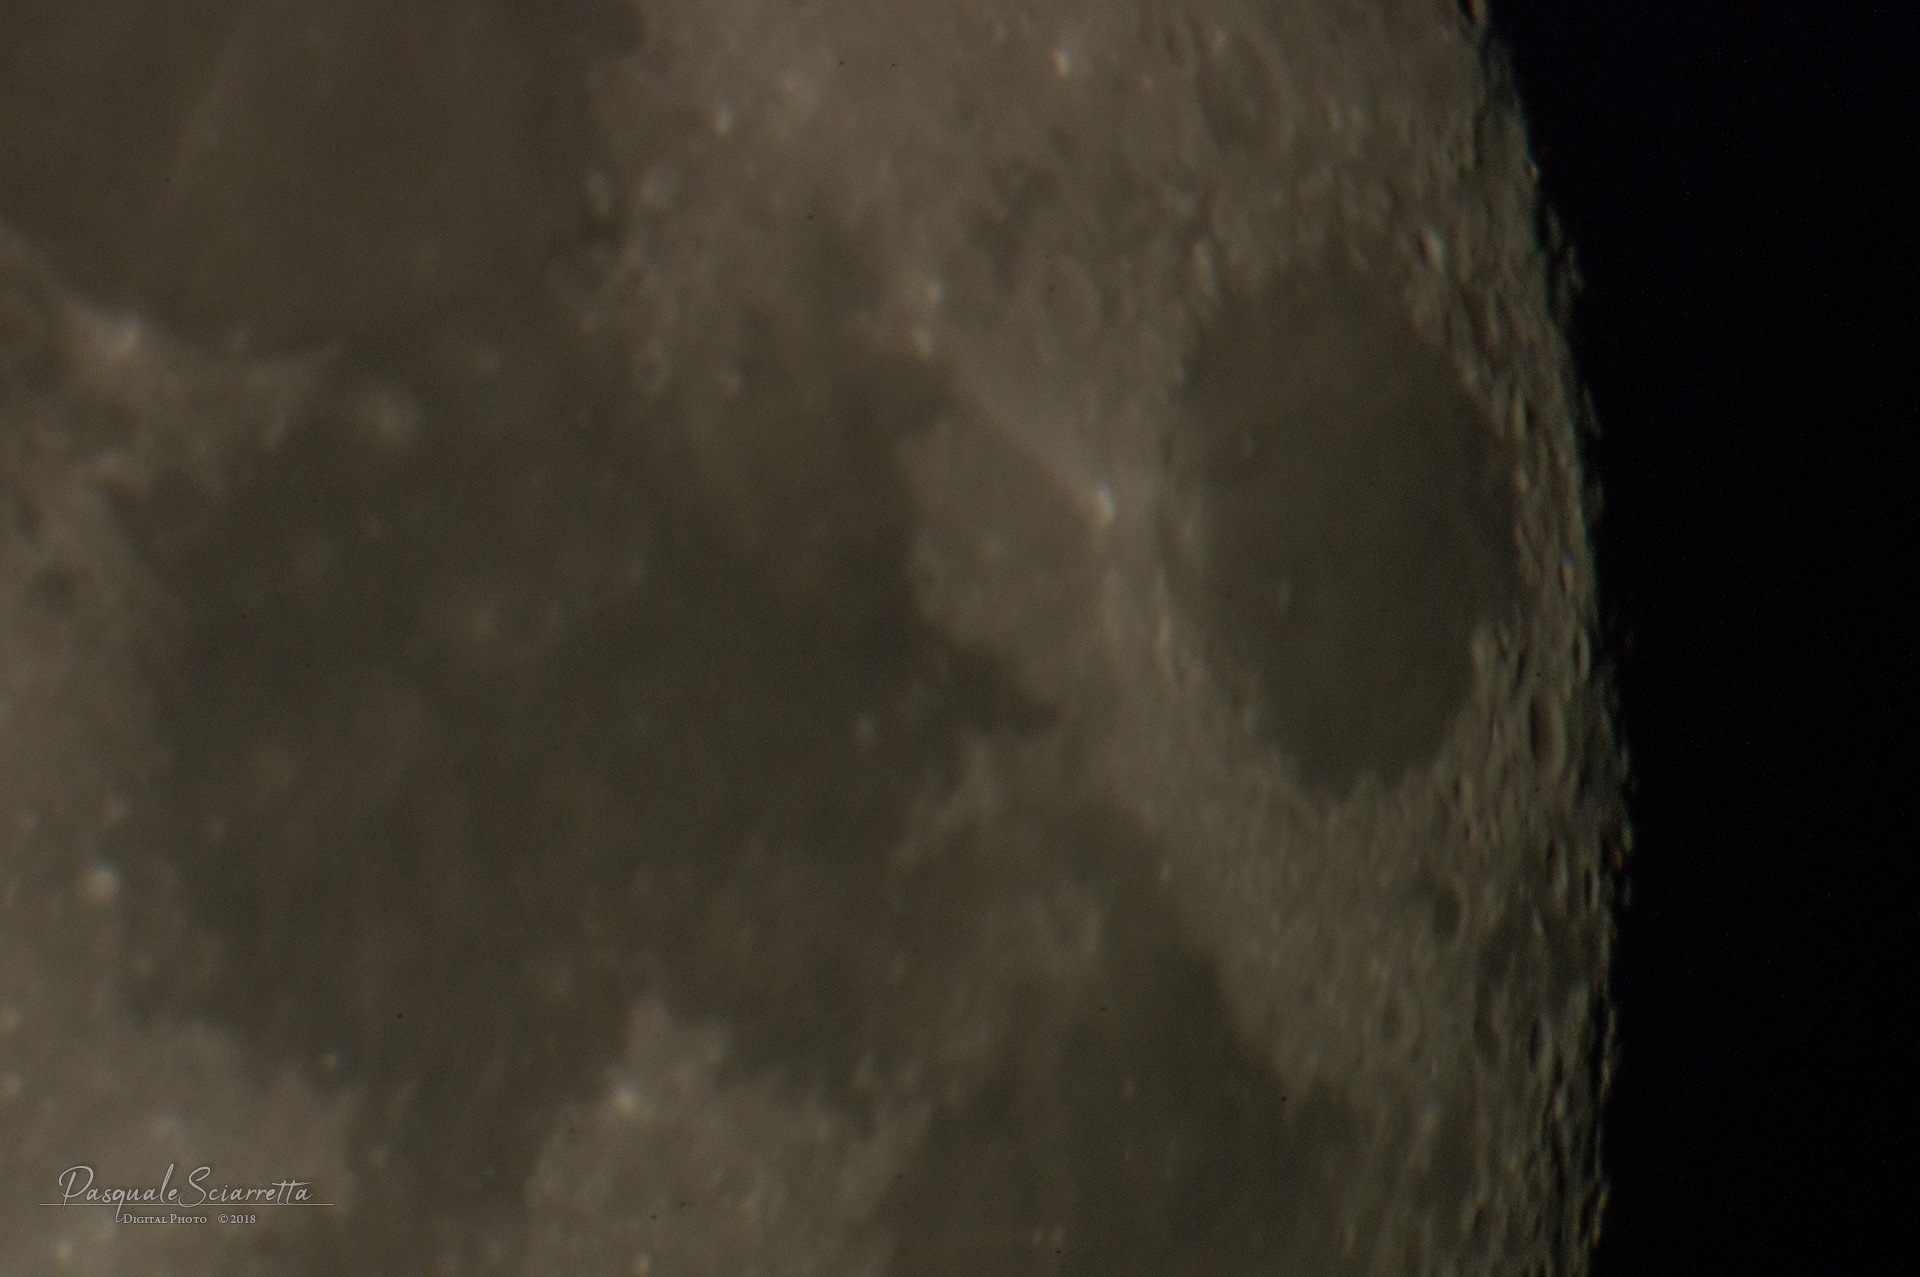 Details - Moon by pasquale s.